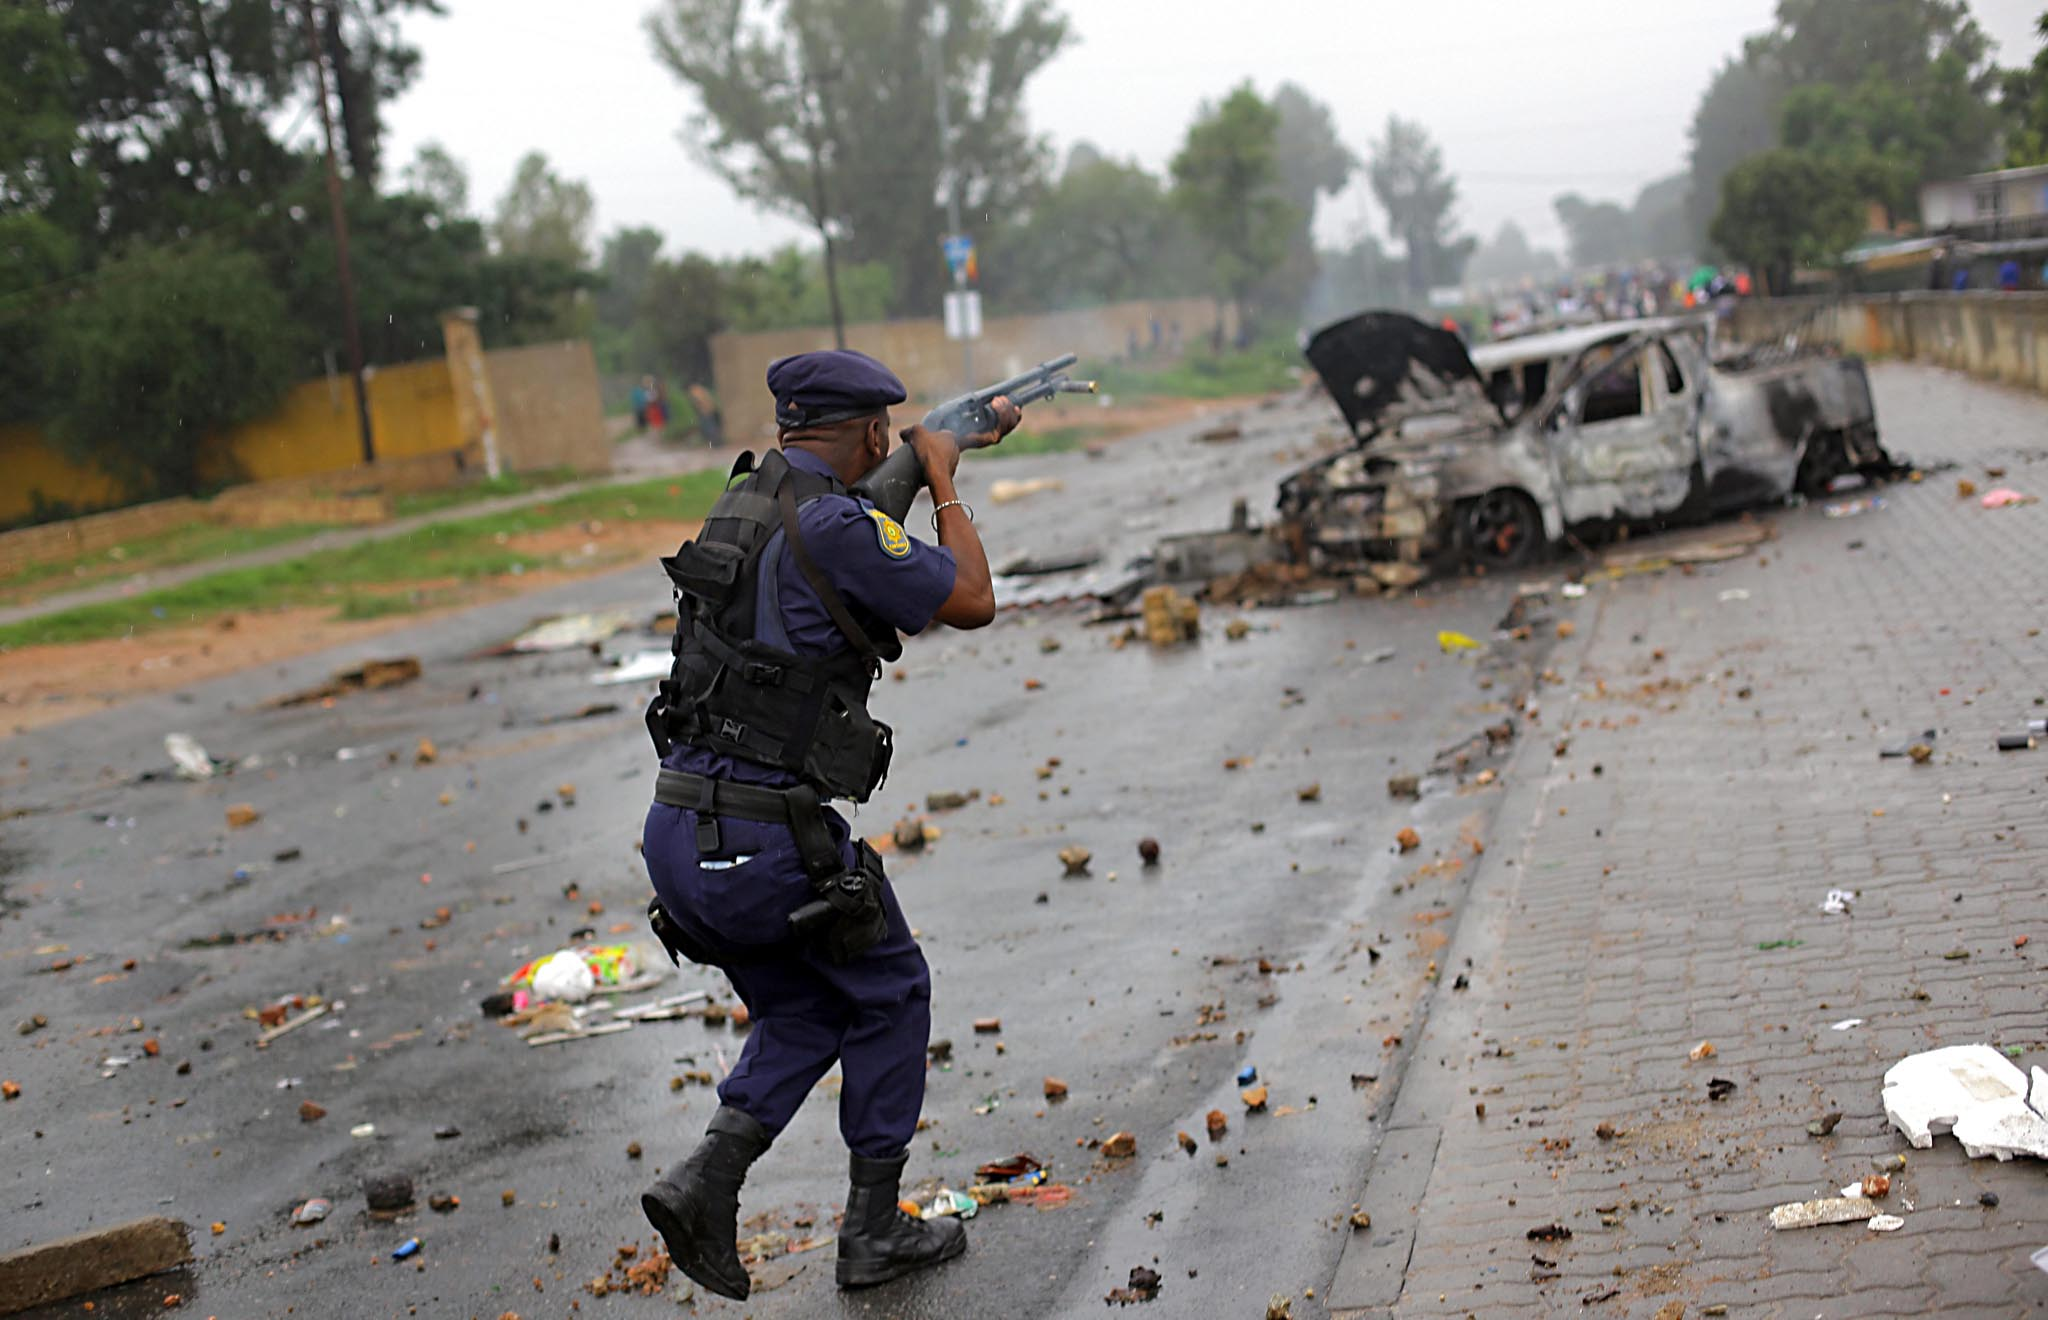 Johannesburg Electricity Protests...epa05215589 A member of the South African Police Service fires rubber bullets on striking community members in Zandspruit, an informal settlement west of Johannesburg, South Africa, 17 March 2016. Community members blocked and barricaded roads surrounding the settlement, after their illegal electricity connections where removed my Johannesburg Council workers almost a week ago.  EPA/KEVIN SUTHERLAND